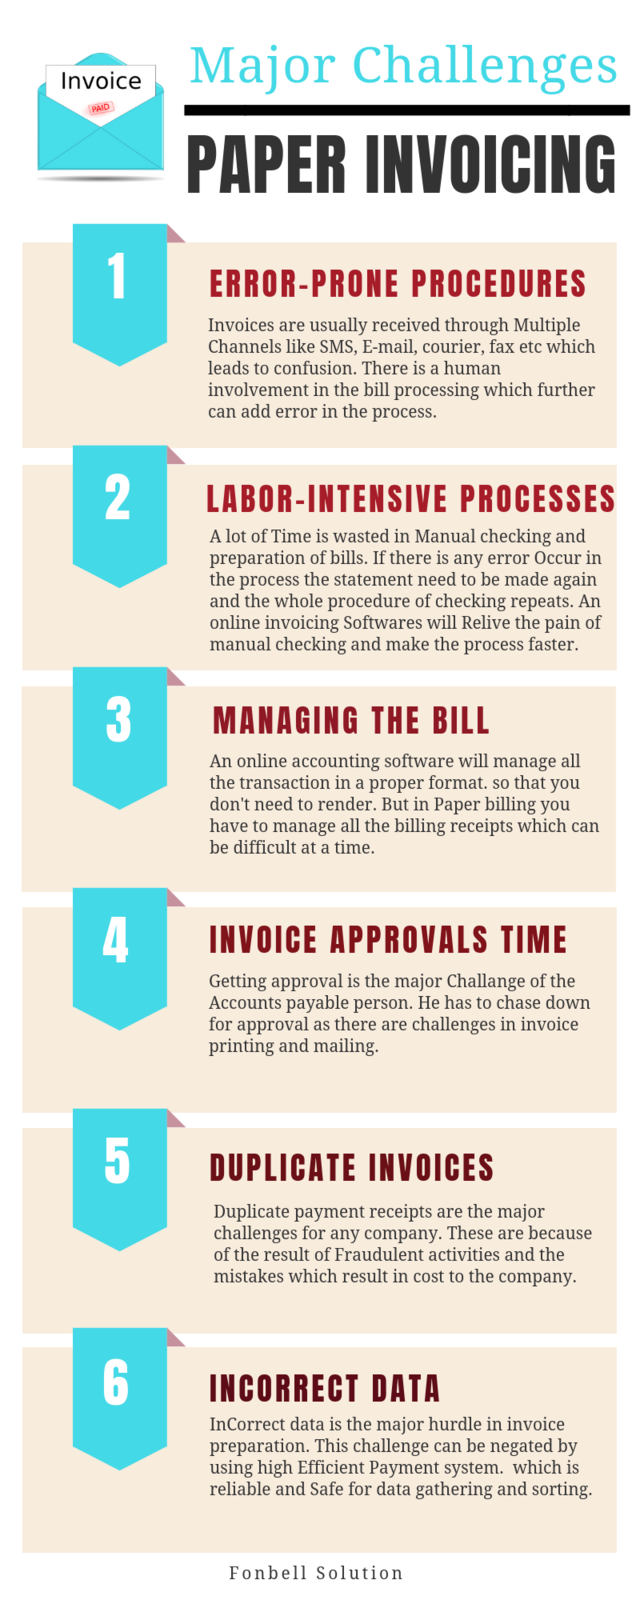 Major challenges in paper invoicing